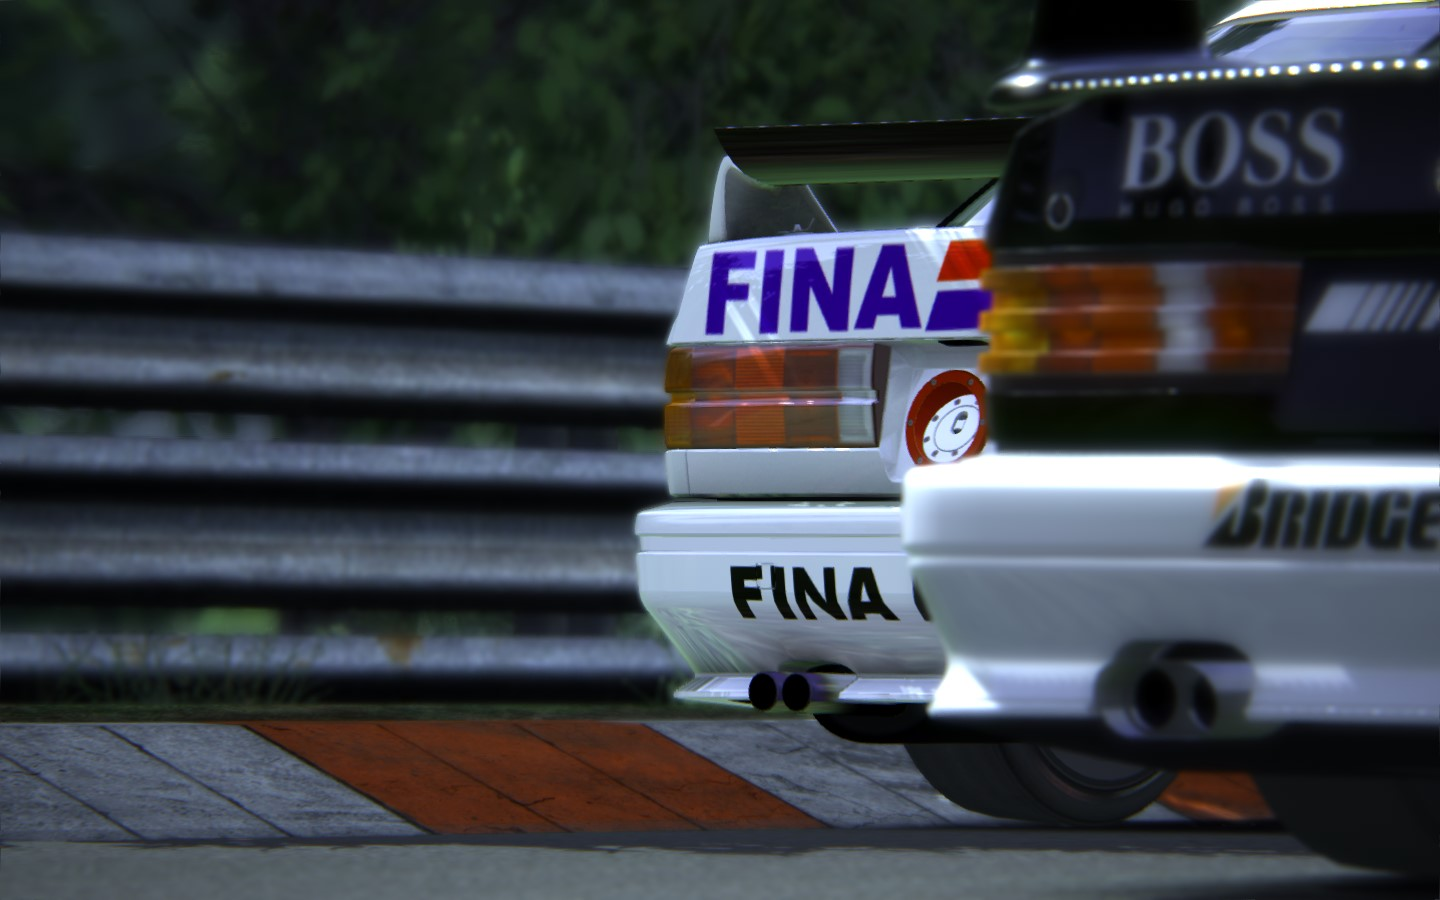 Screenshot_ks_mercedes_190_evo2_ks_nordschleife_27-3-118-23-27-23.jpg